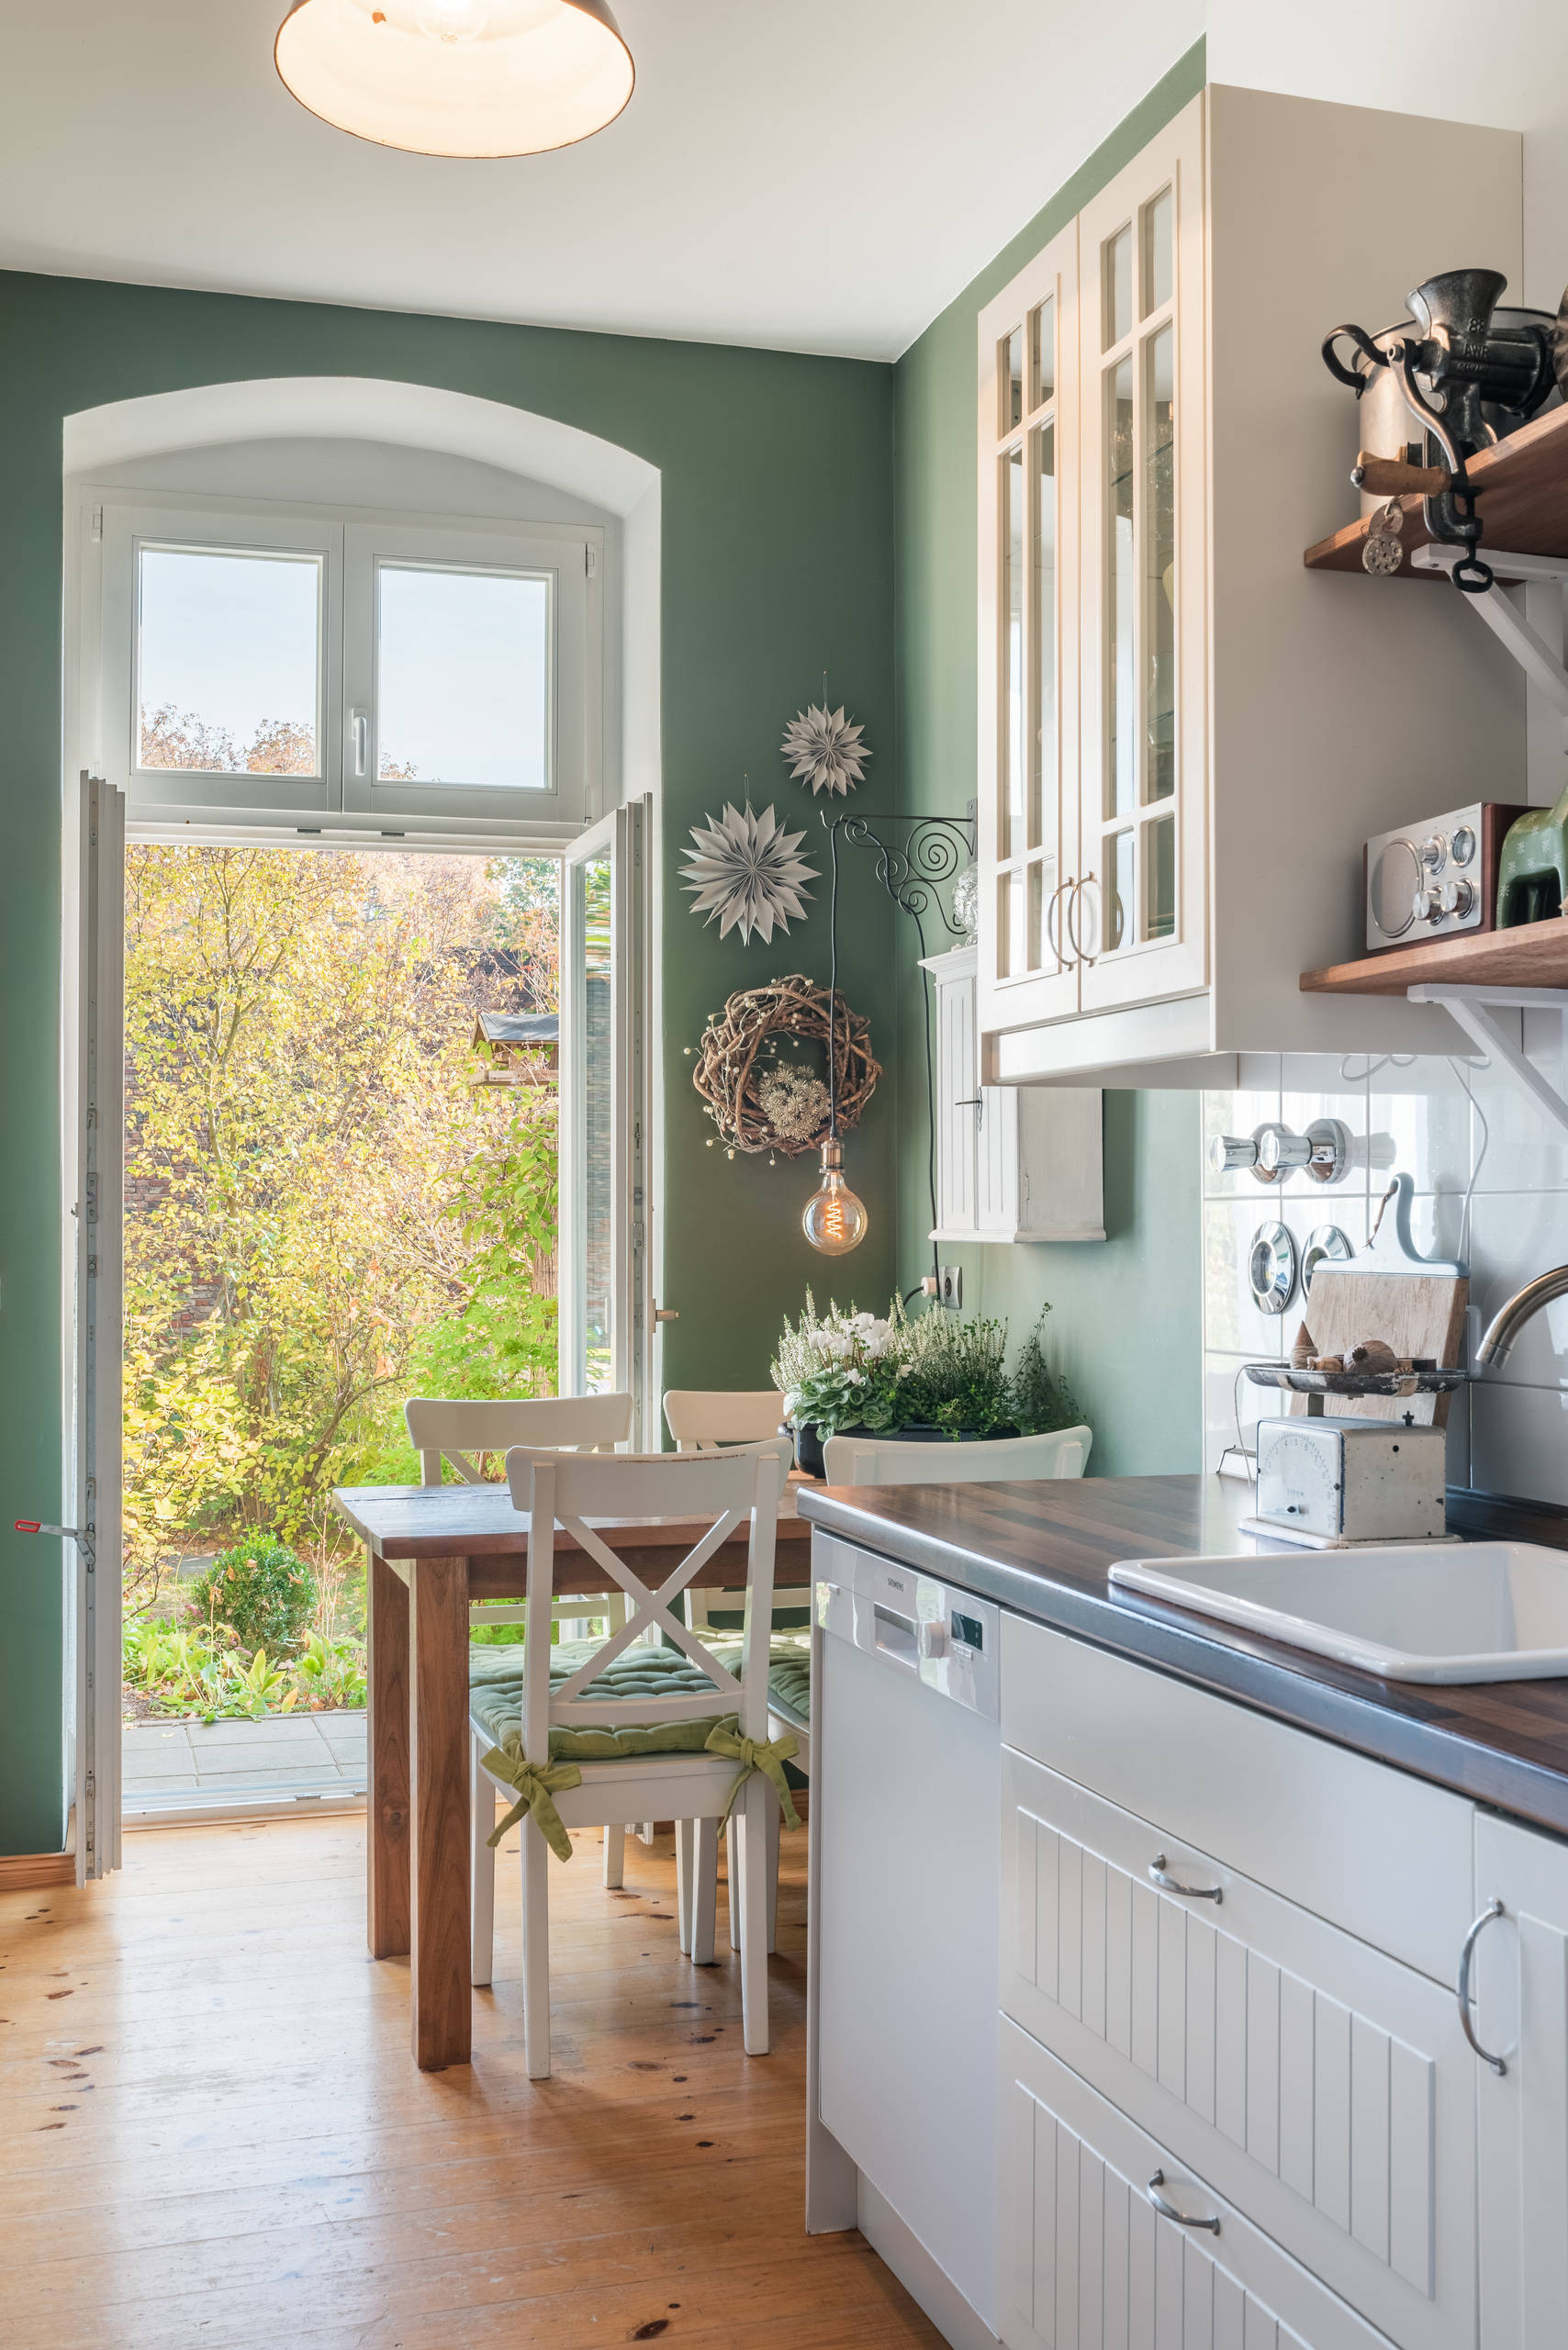 75 Beautiful Scandinavian Kitchen With A Drop In Sink Pictures